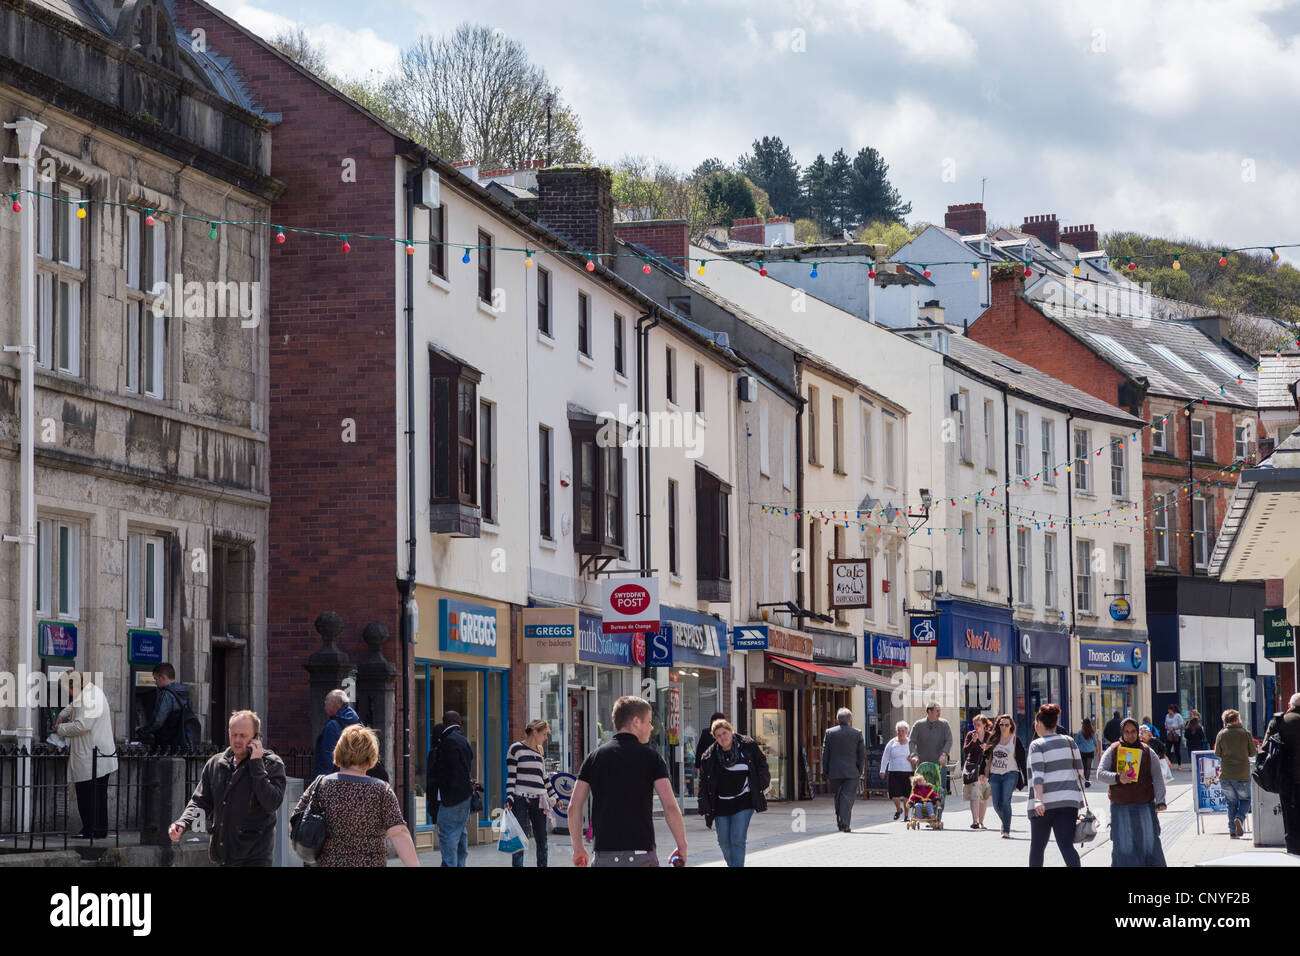 High Street, Bangor, North Wales, UK. Street scene busy with people in the city centre shopping precinct - Stock Image